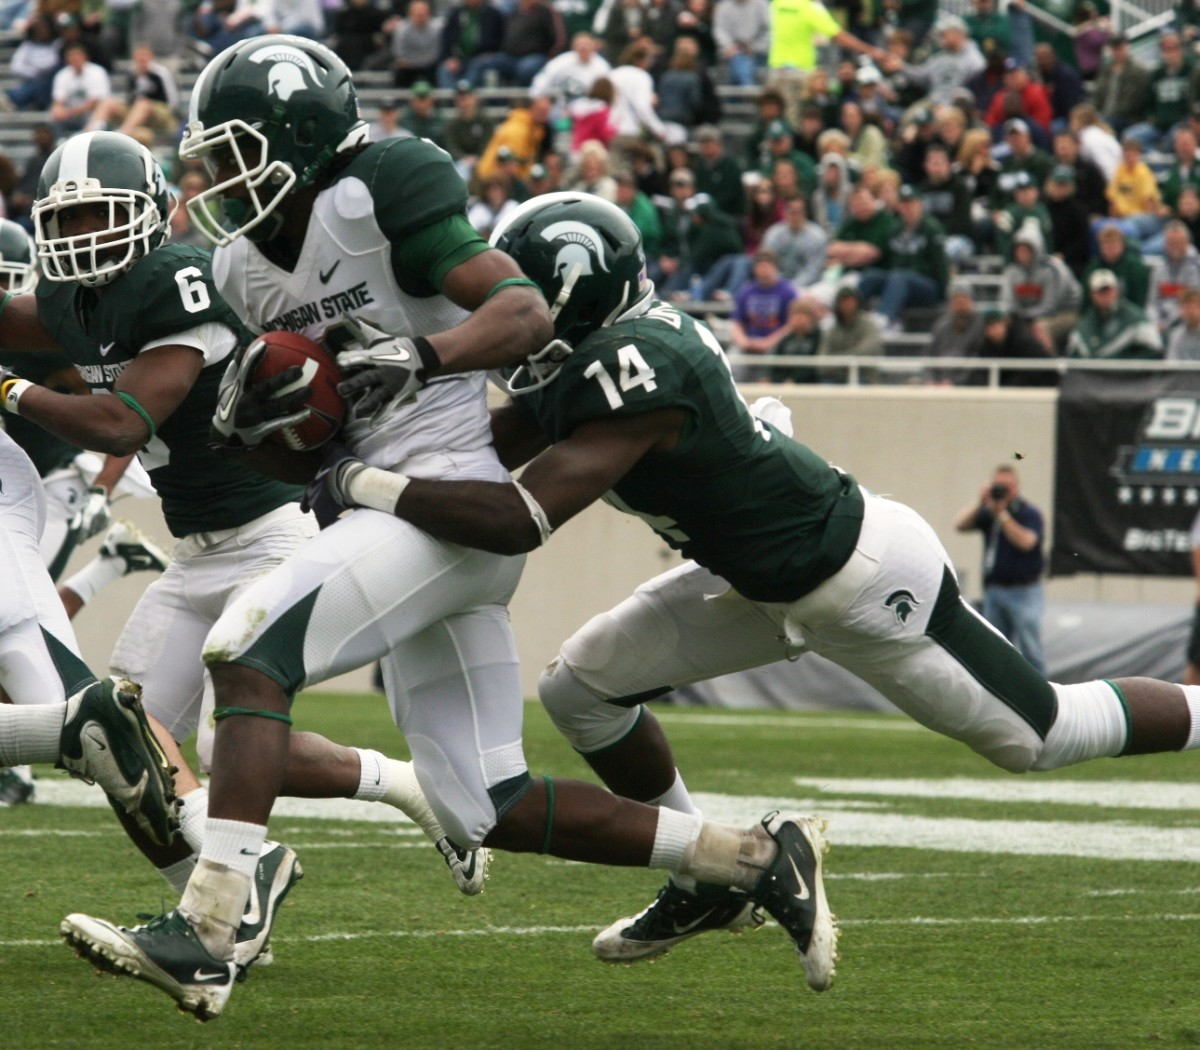 Mark Dantonio is well on his search for his next crop of stars in the 2012 class.  Photo courtesy of Bill Marklevits.